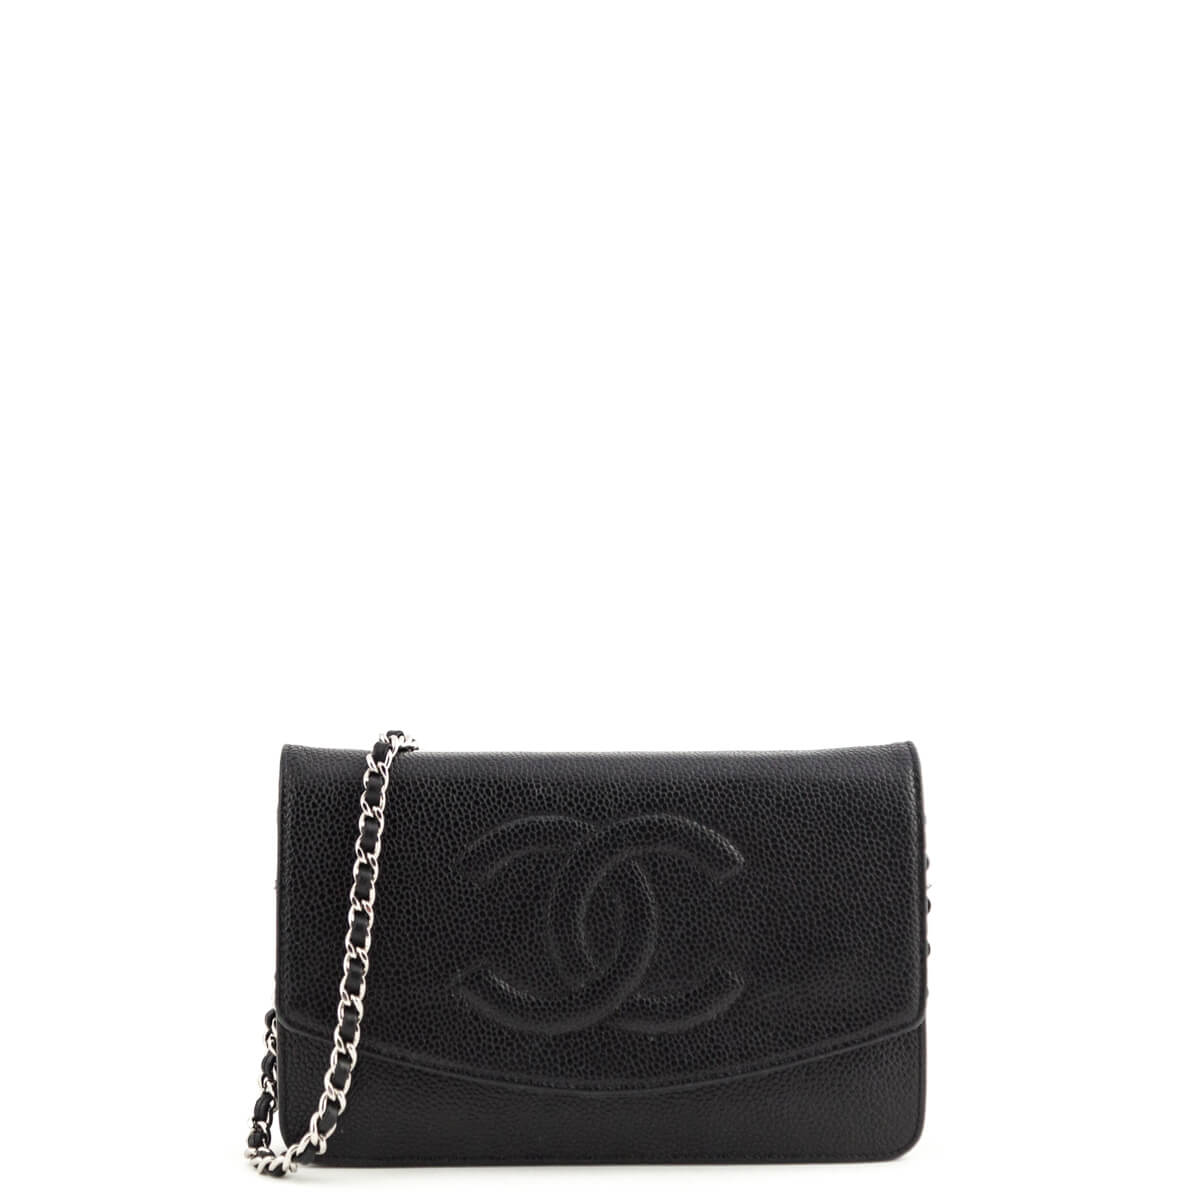 1bac3eb855f9a4 Chanel Black Caviar Timeless CC Wallet on Chain SHW - LOVE that BAG -  Preowned Authentic ...